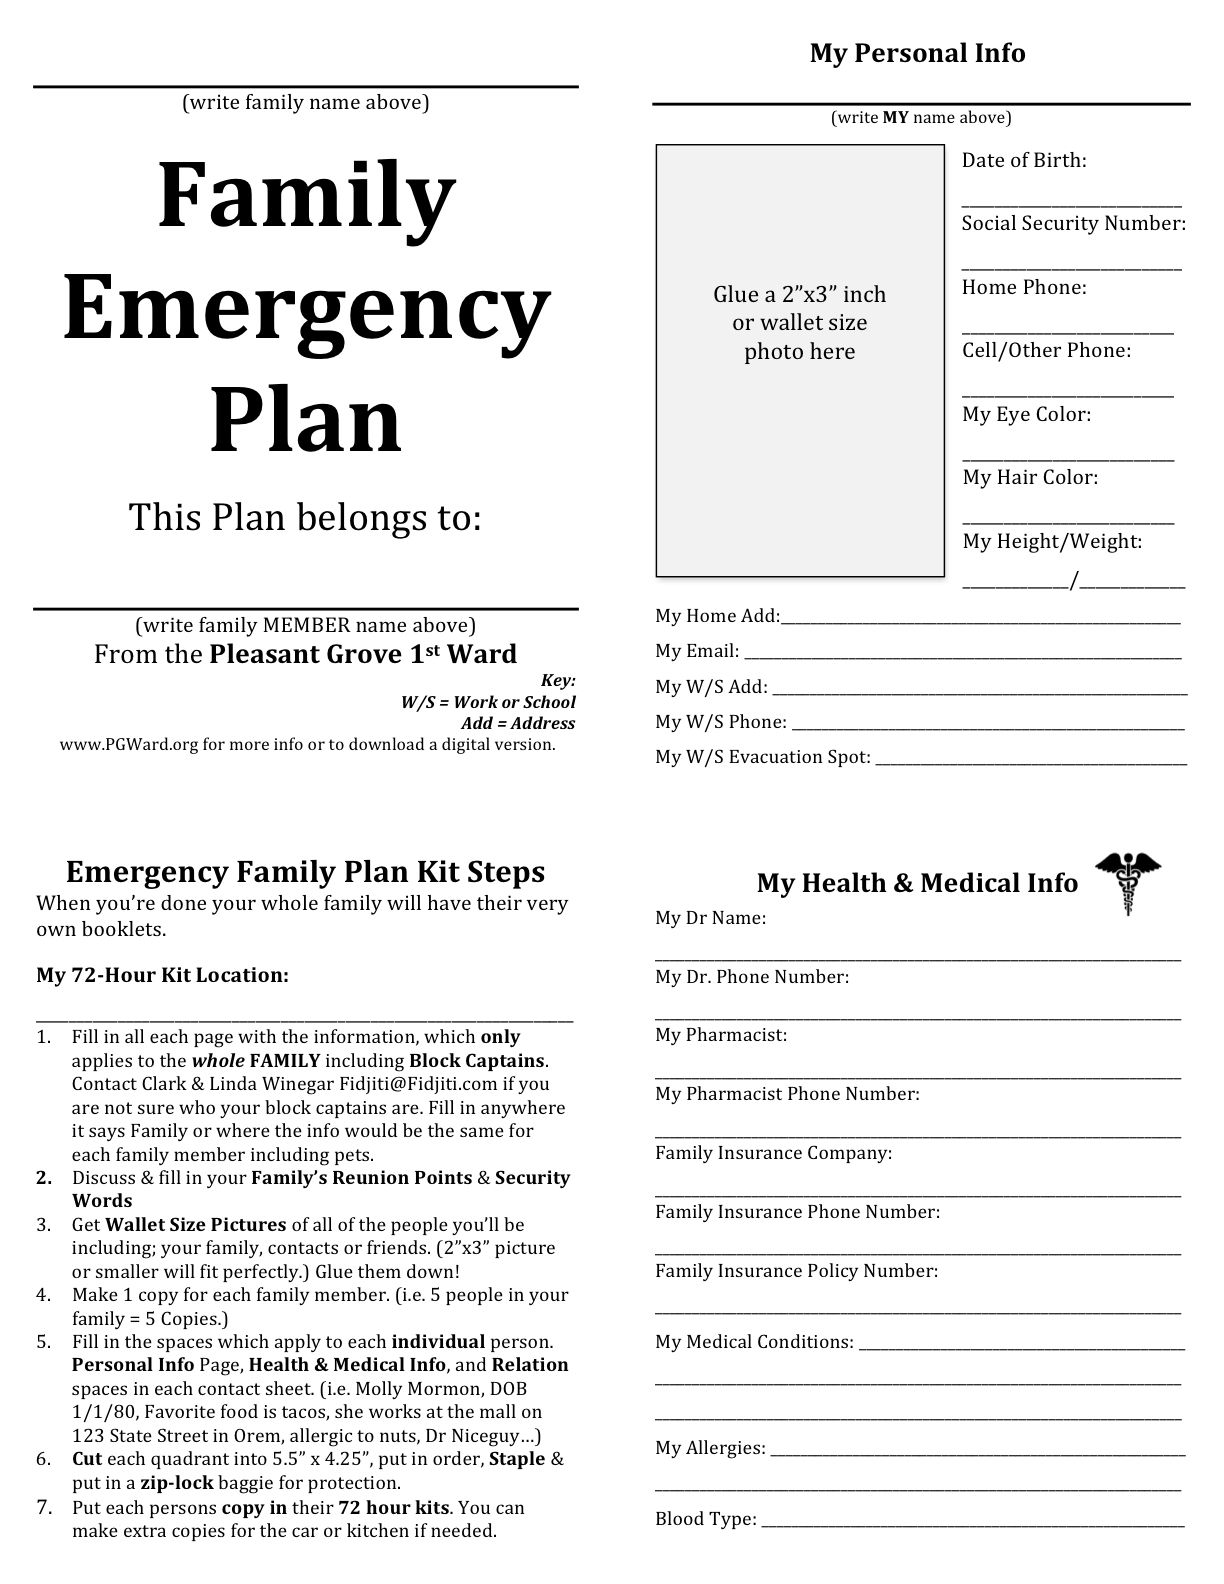 Emergency family plan template selol ink emergency family plan template friedricerecipe Image collections